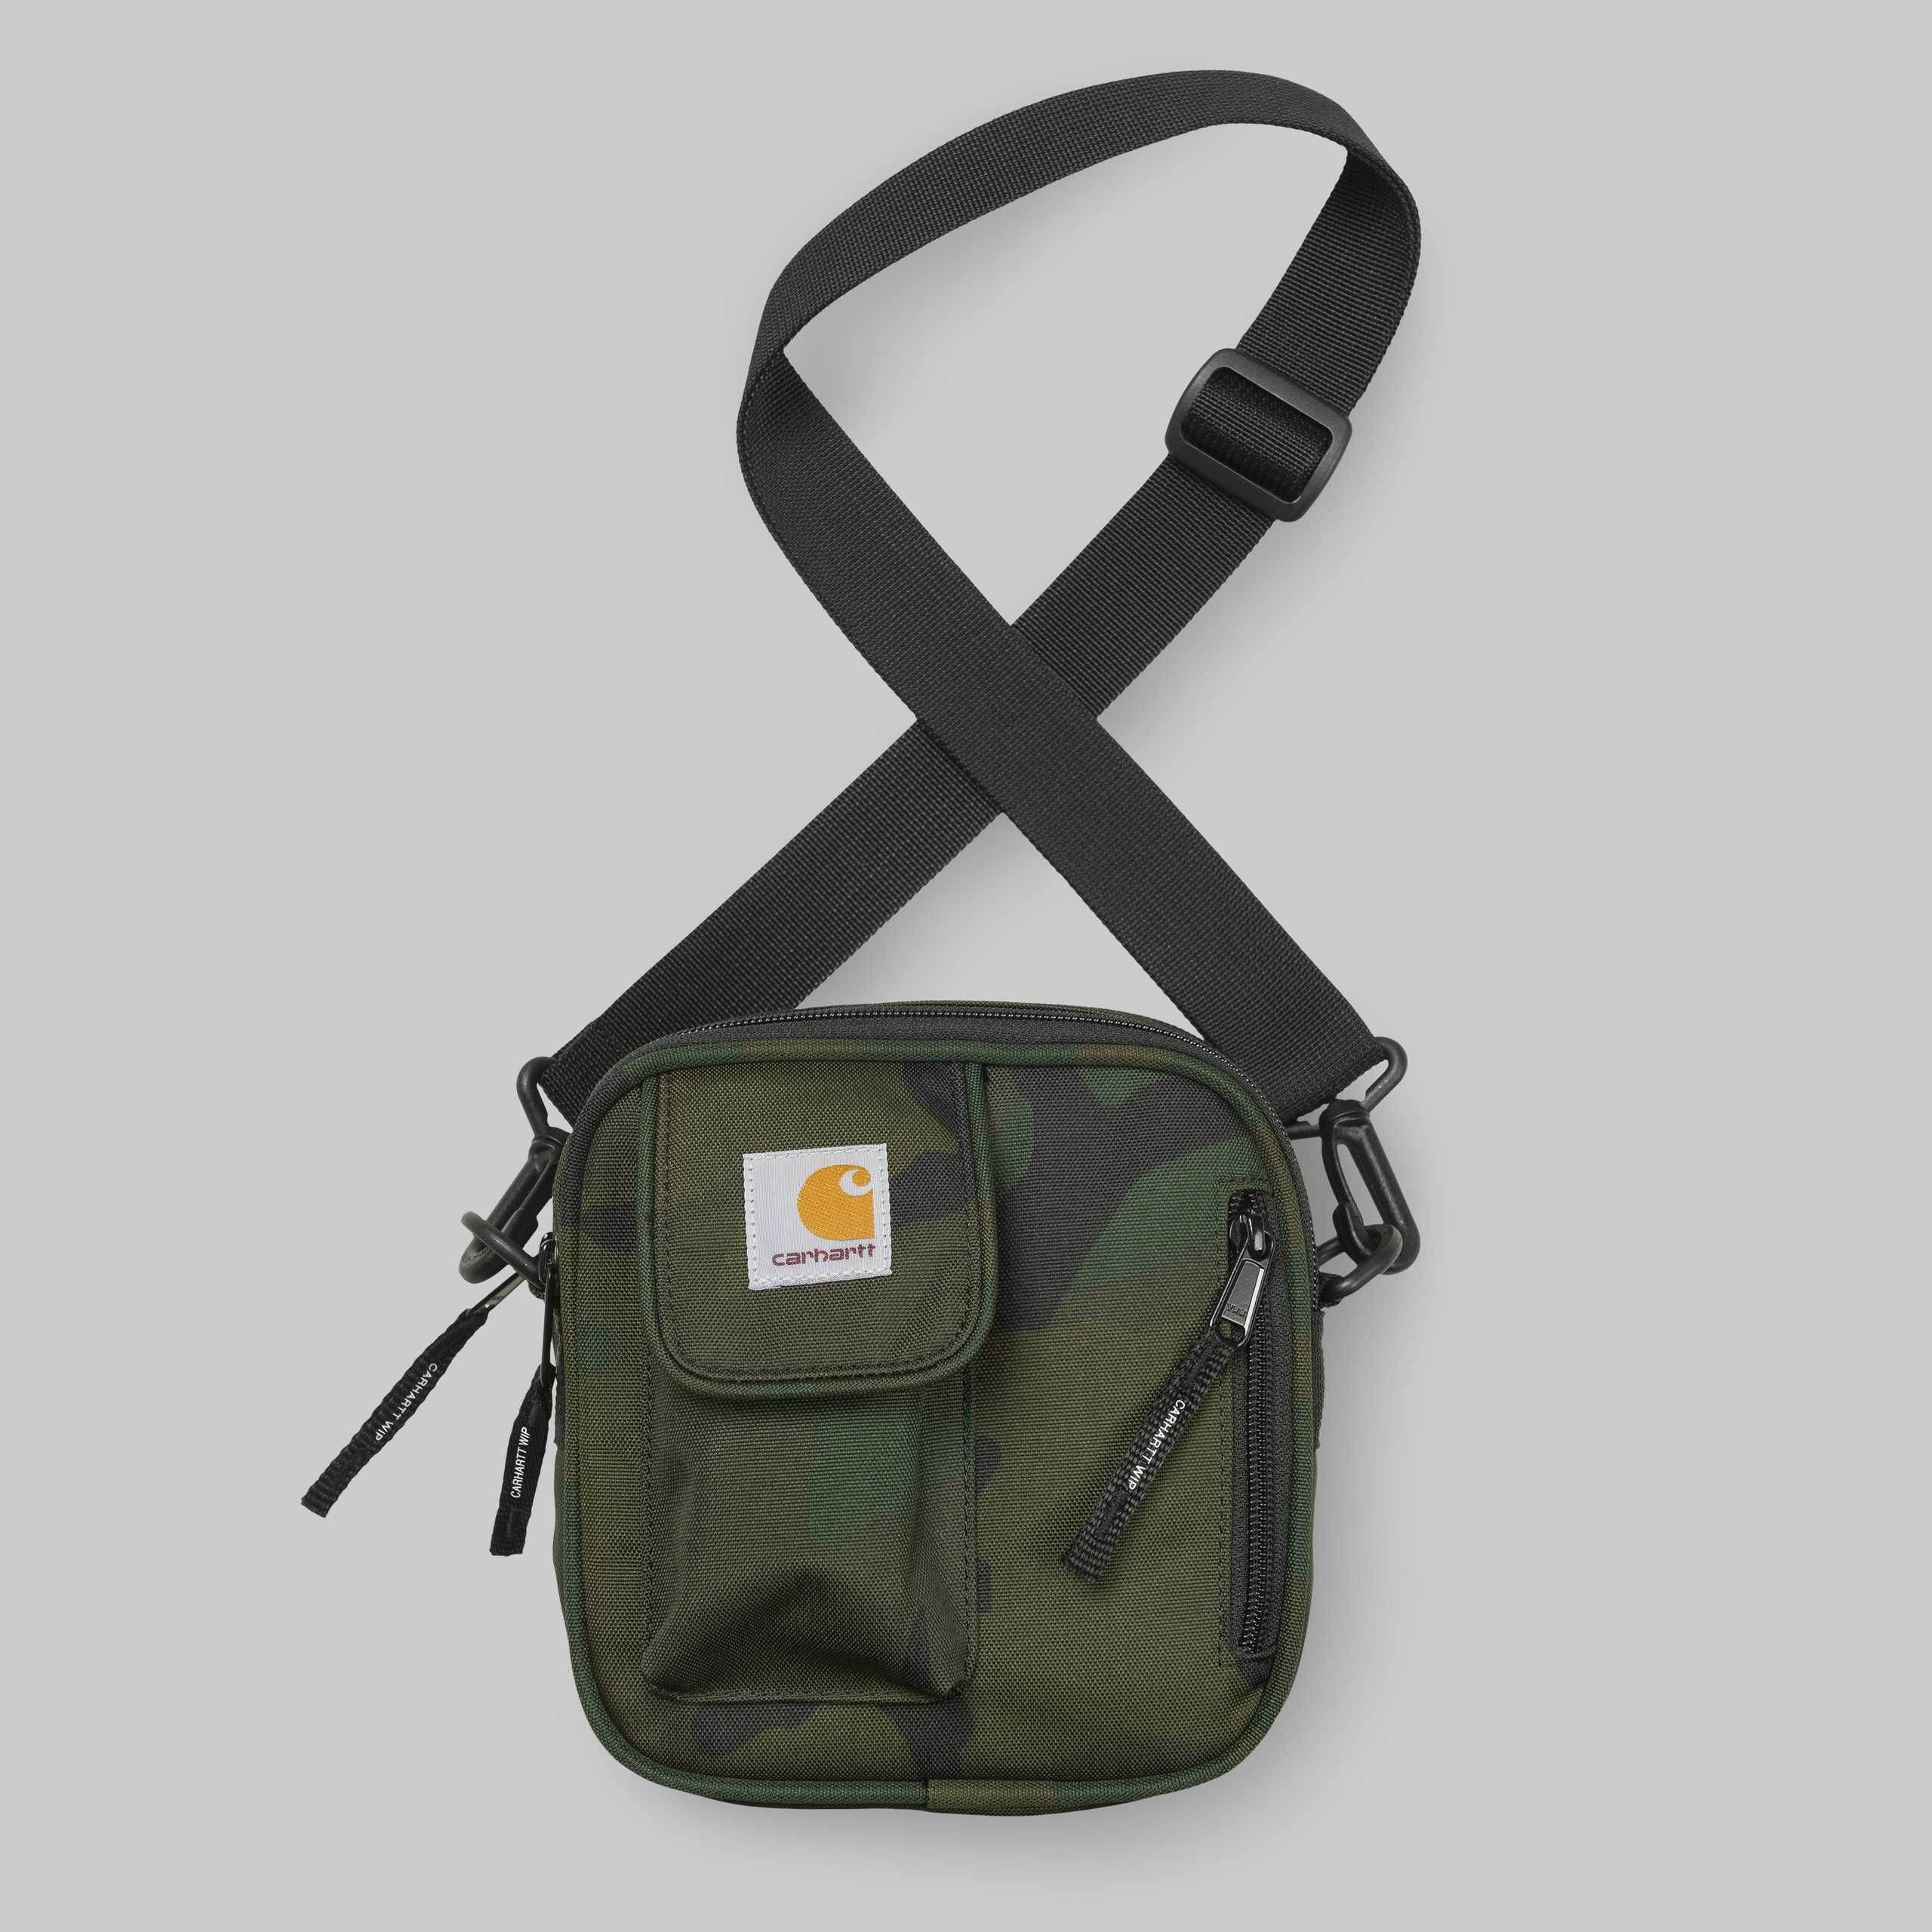 Carhartt Wip Essentials Bag Small Wipcom Product In Niion Hipbag Camo Navy